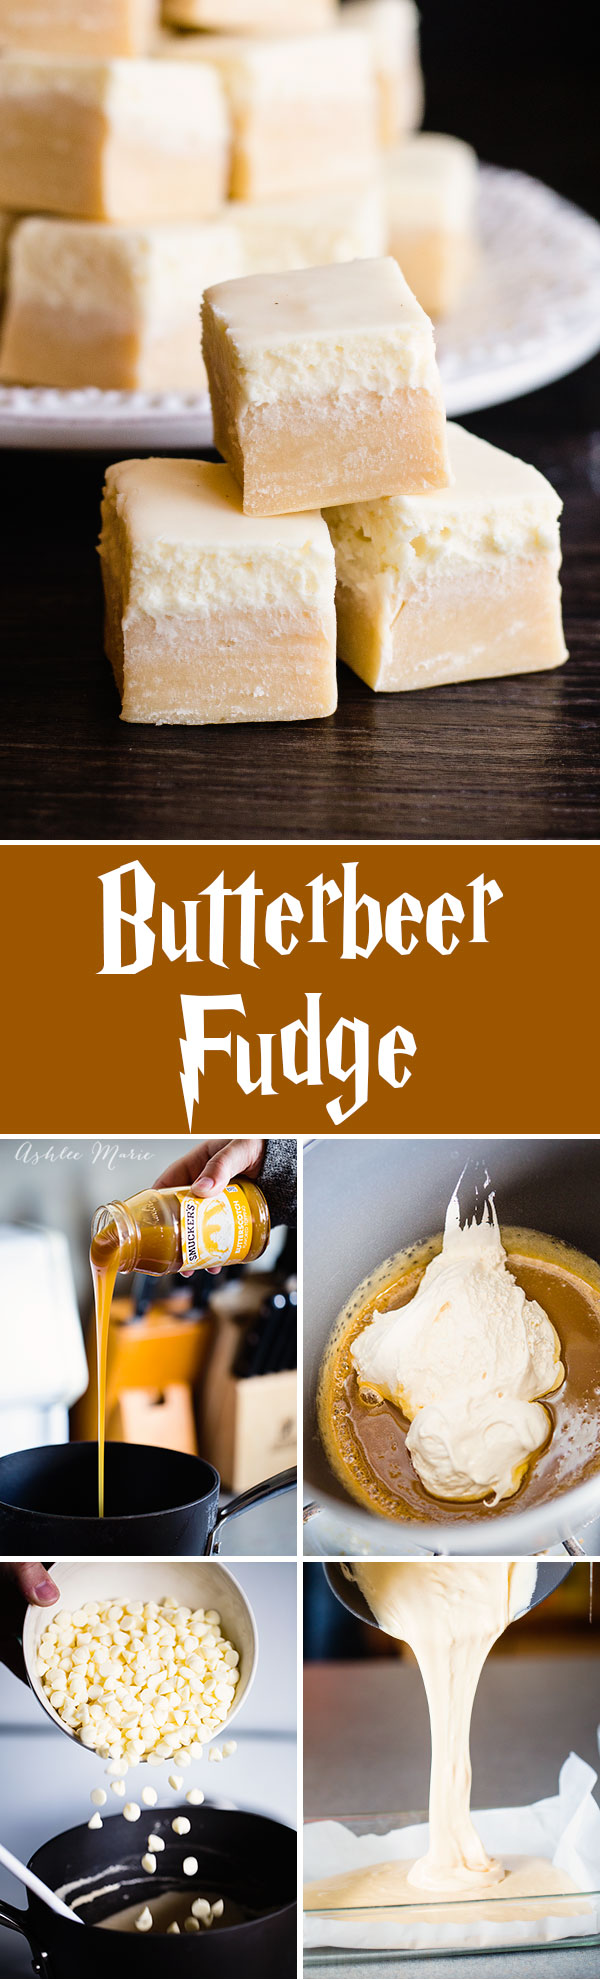 Everyone loves butterbeer, so here is a butterbeer fudge a butterscotch base with a creamy top, just like the drink itself